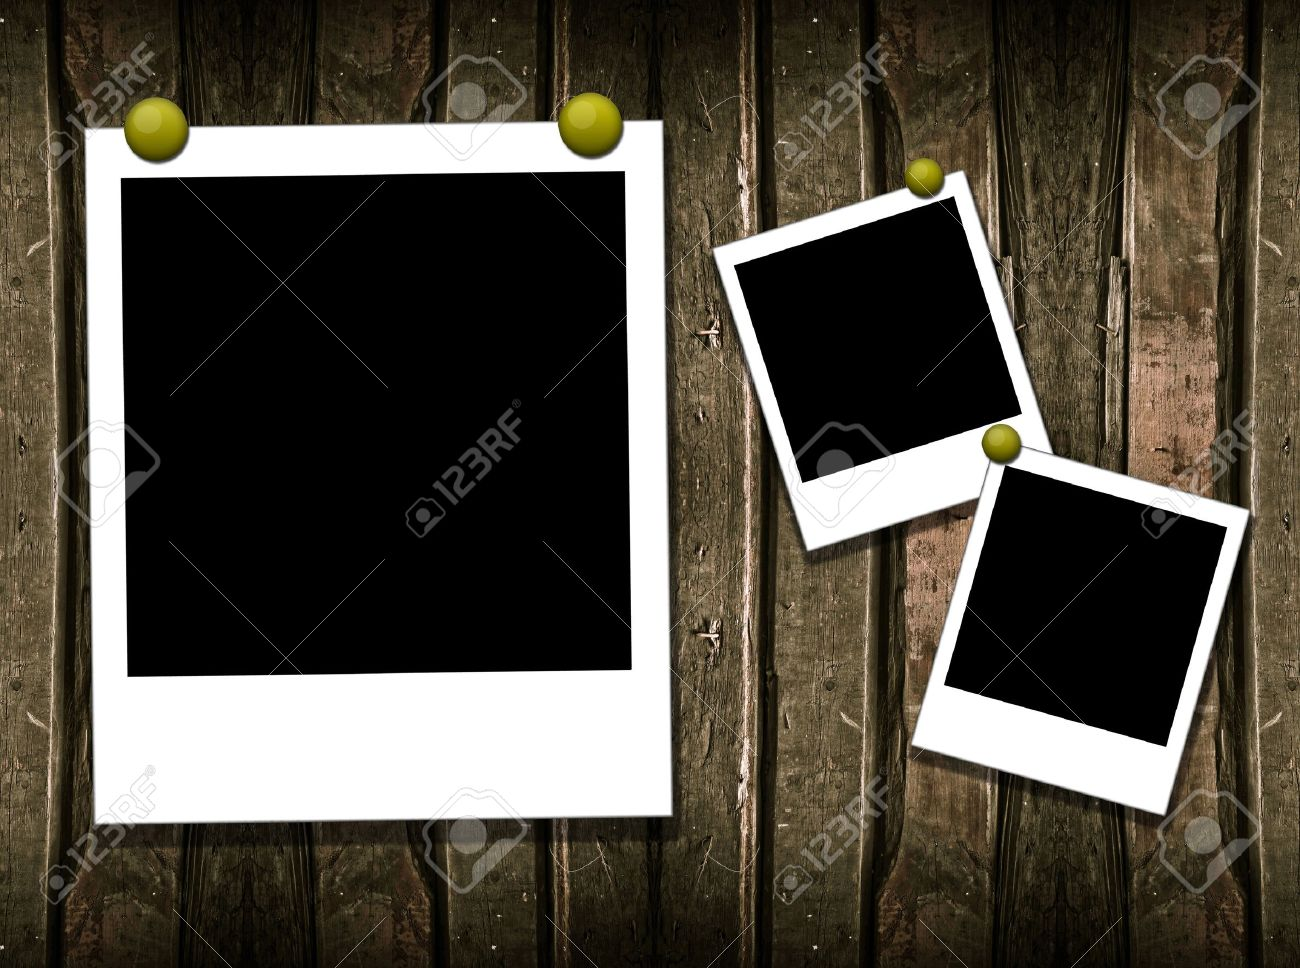 Wood Background With Polaroid Frame Stock Photo, Picture And Royalty ...